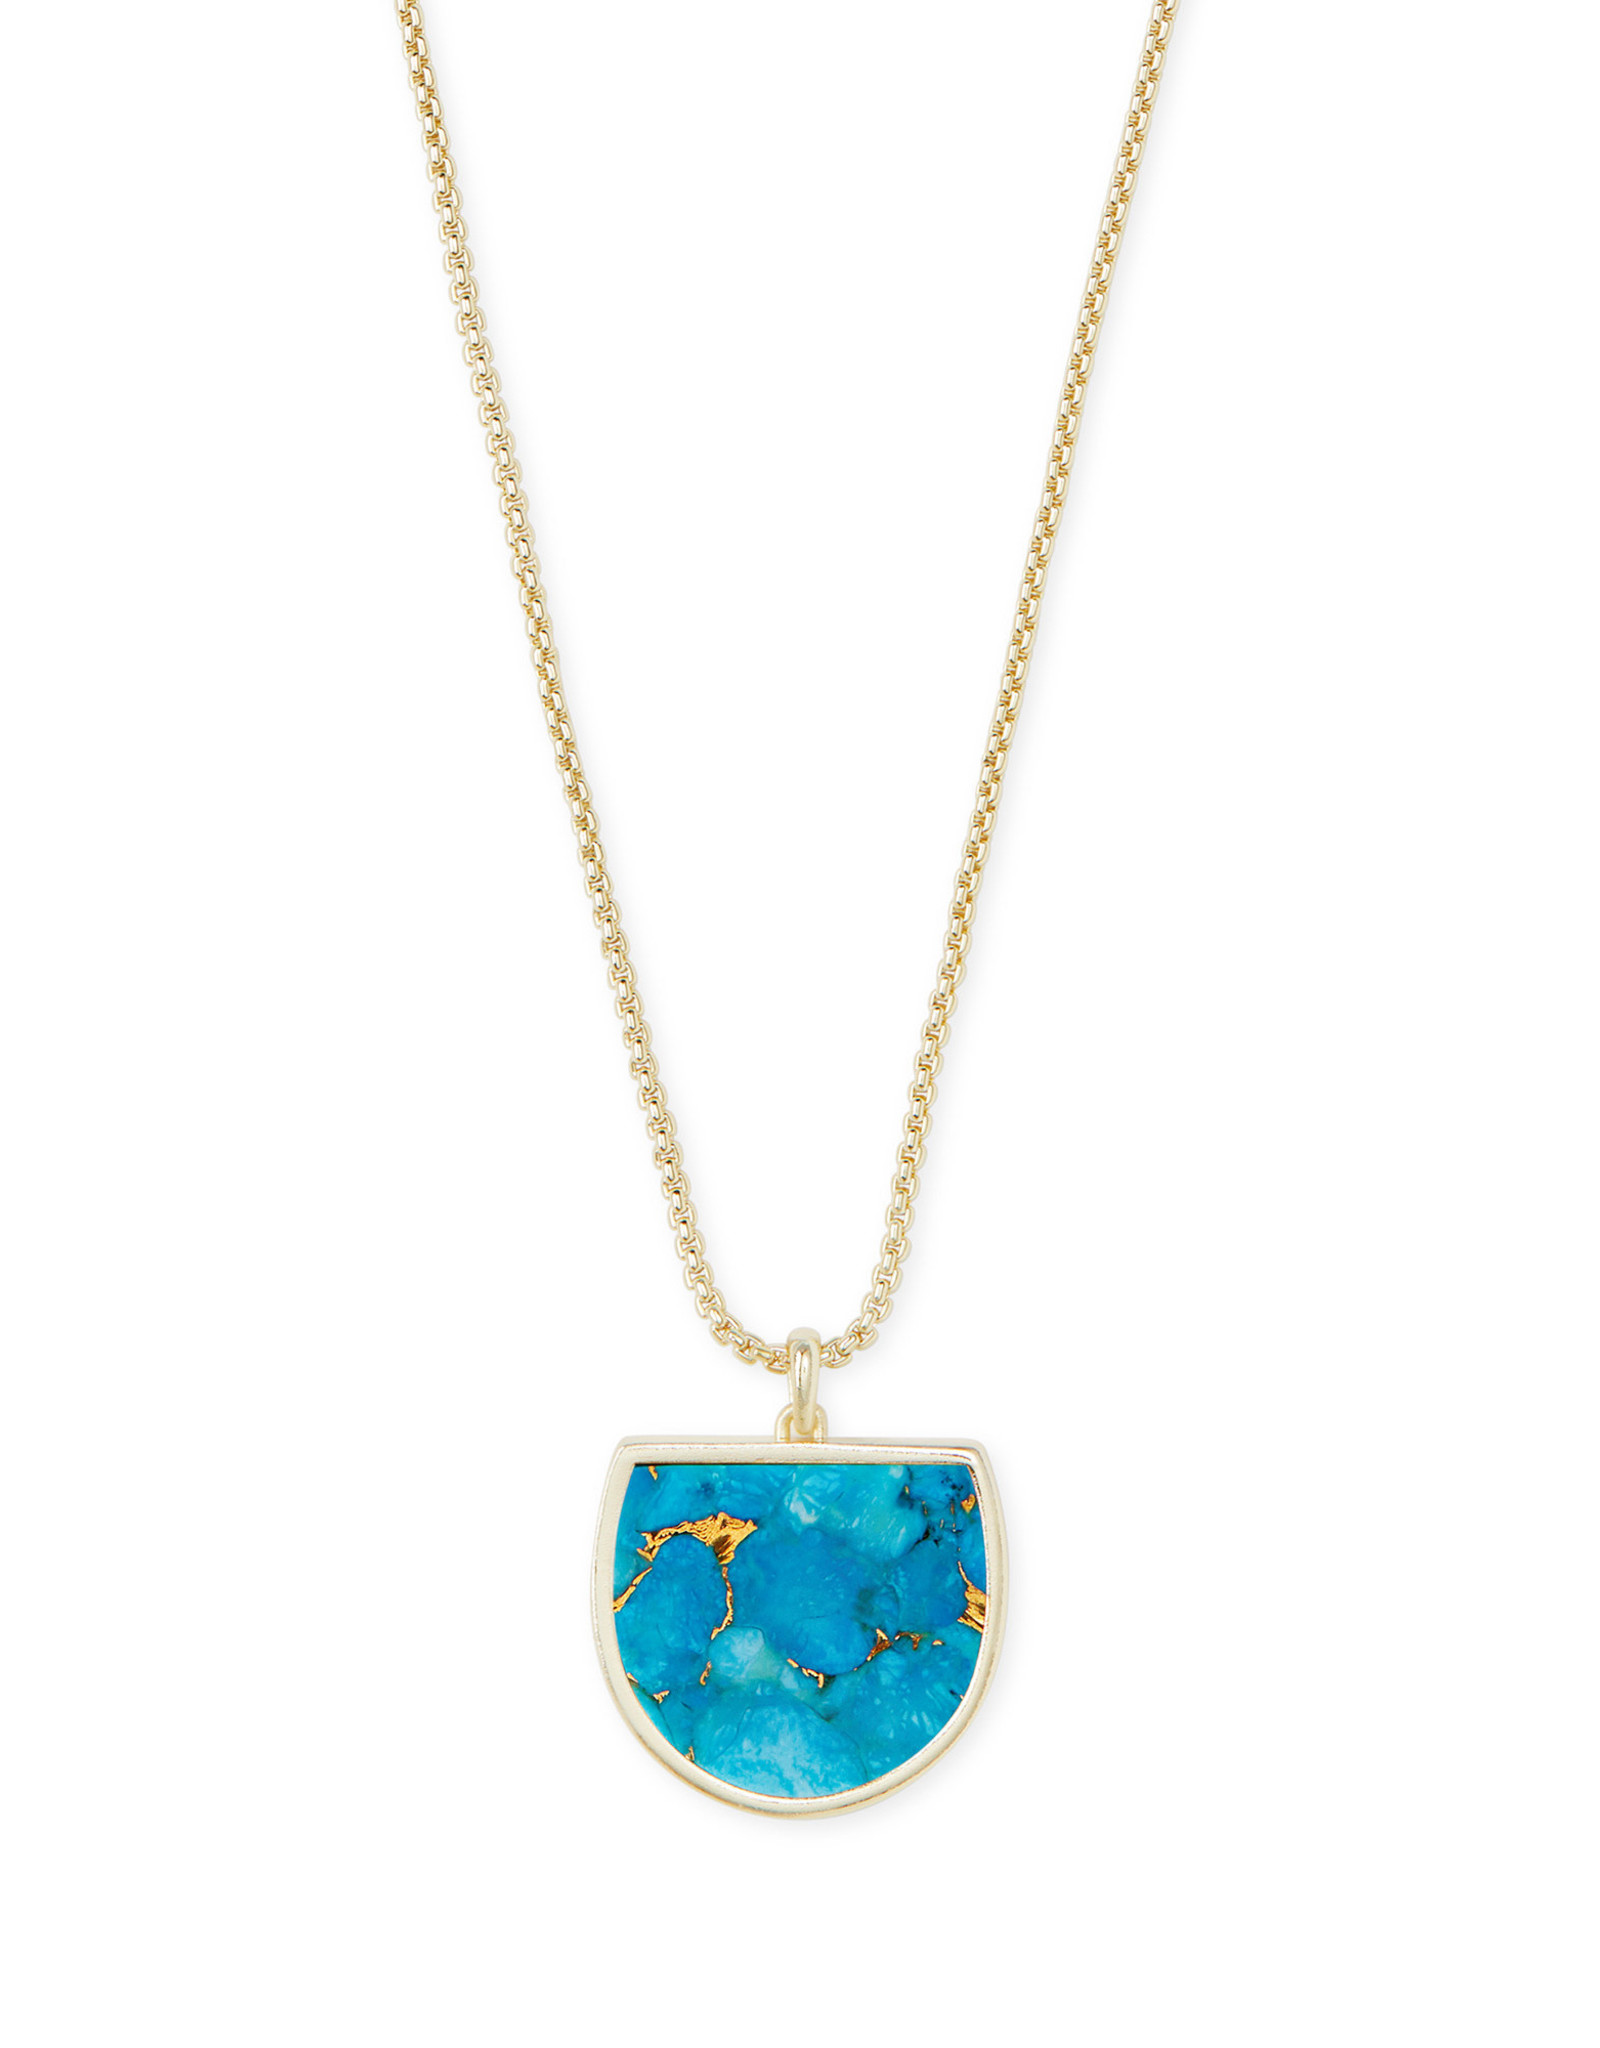 Kendra Scott Luna Pendant Necklace - Bronze Veined Turquoise/Gold